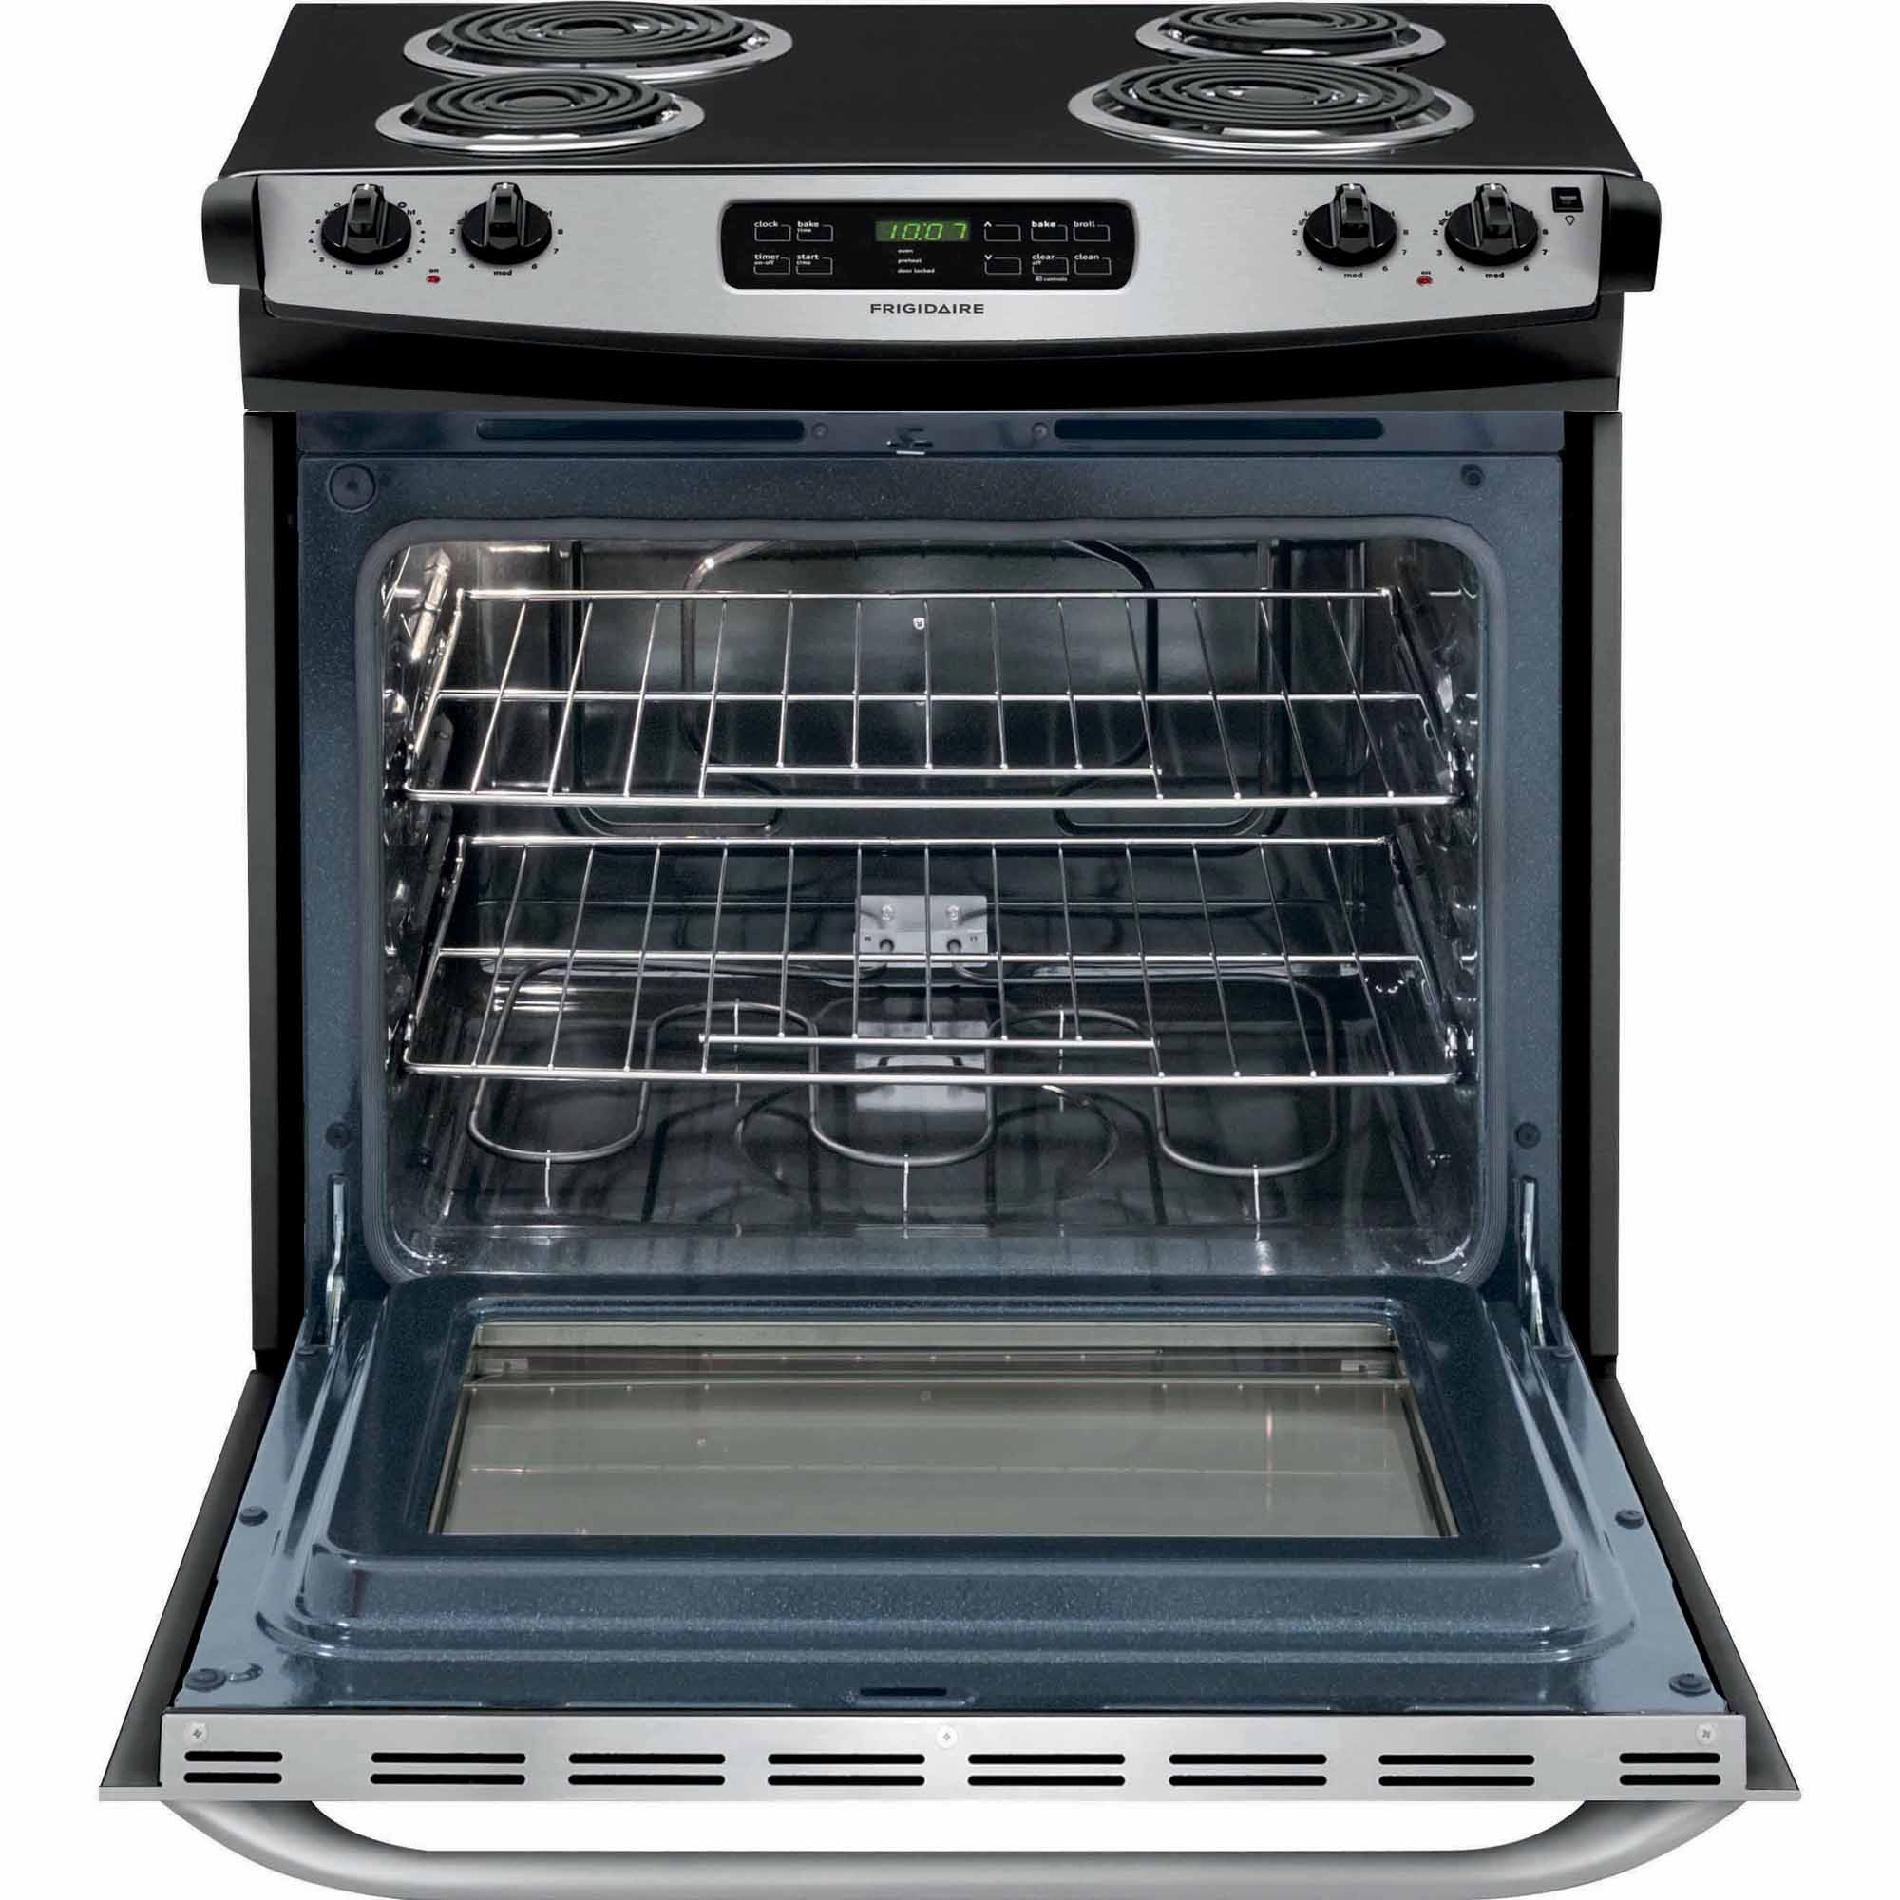 Frigidaire FFES3015PS 4.6 cu. ft. Slide-In Electric Range - Stainless Steel